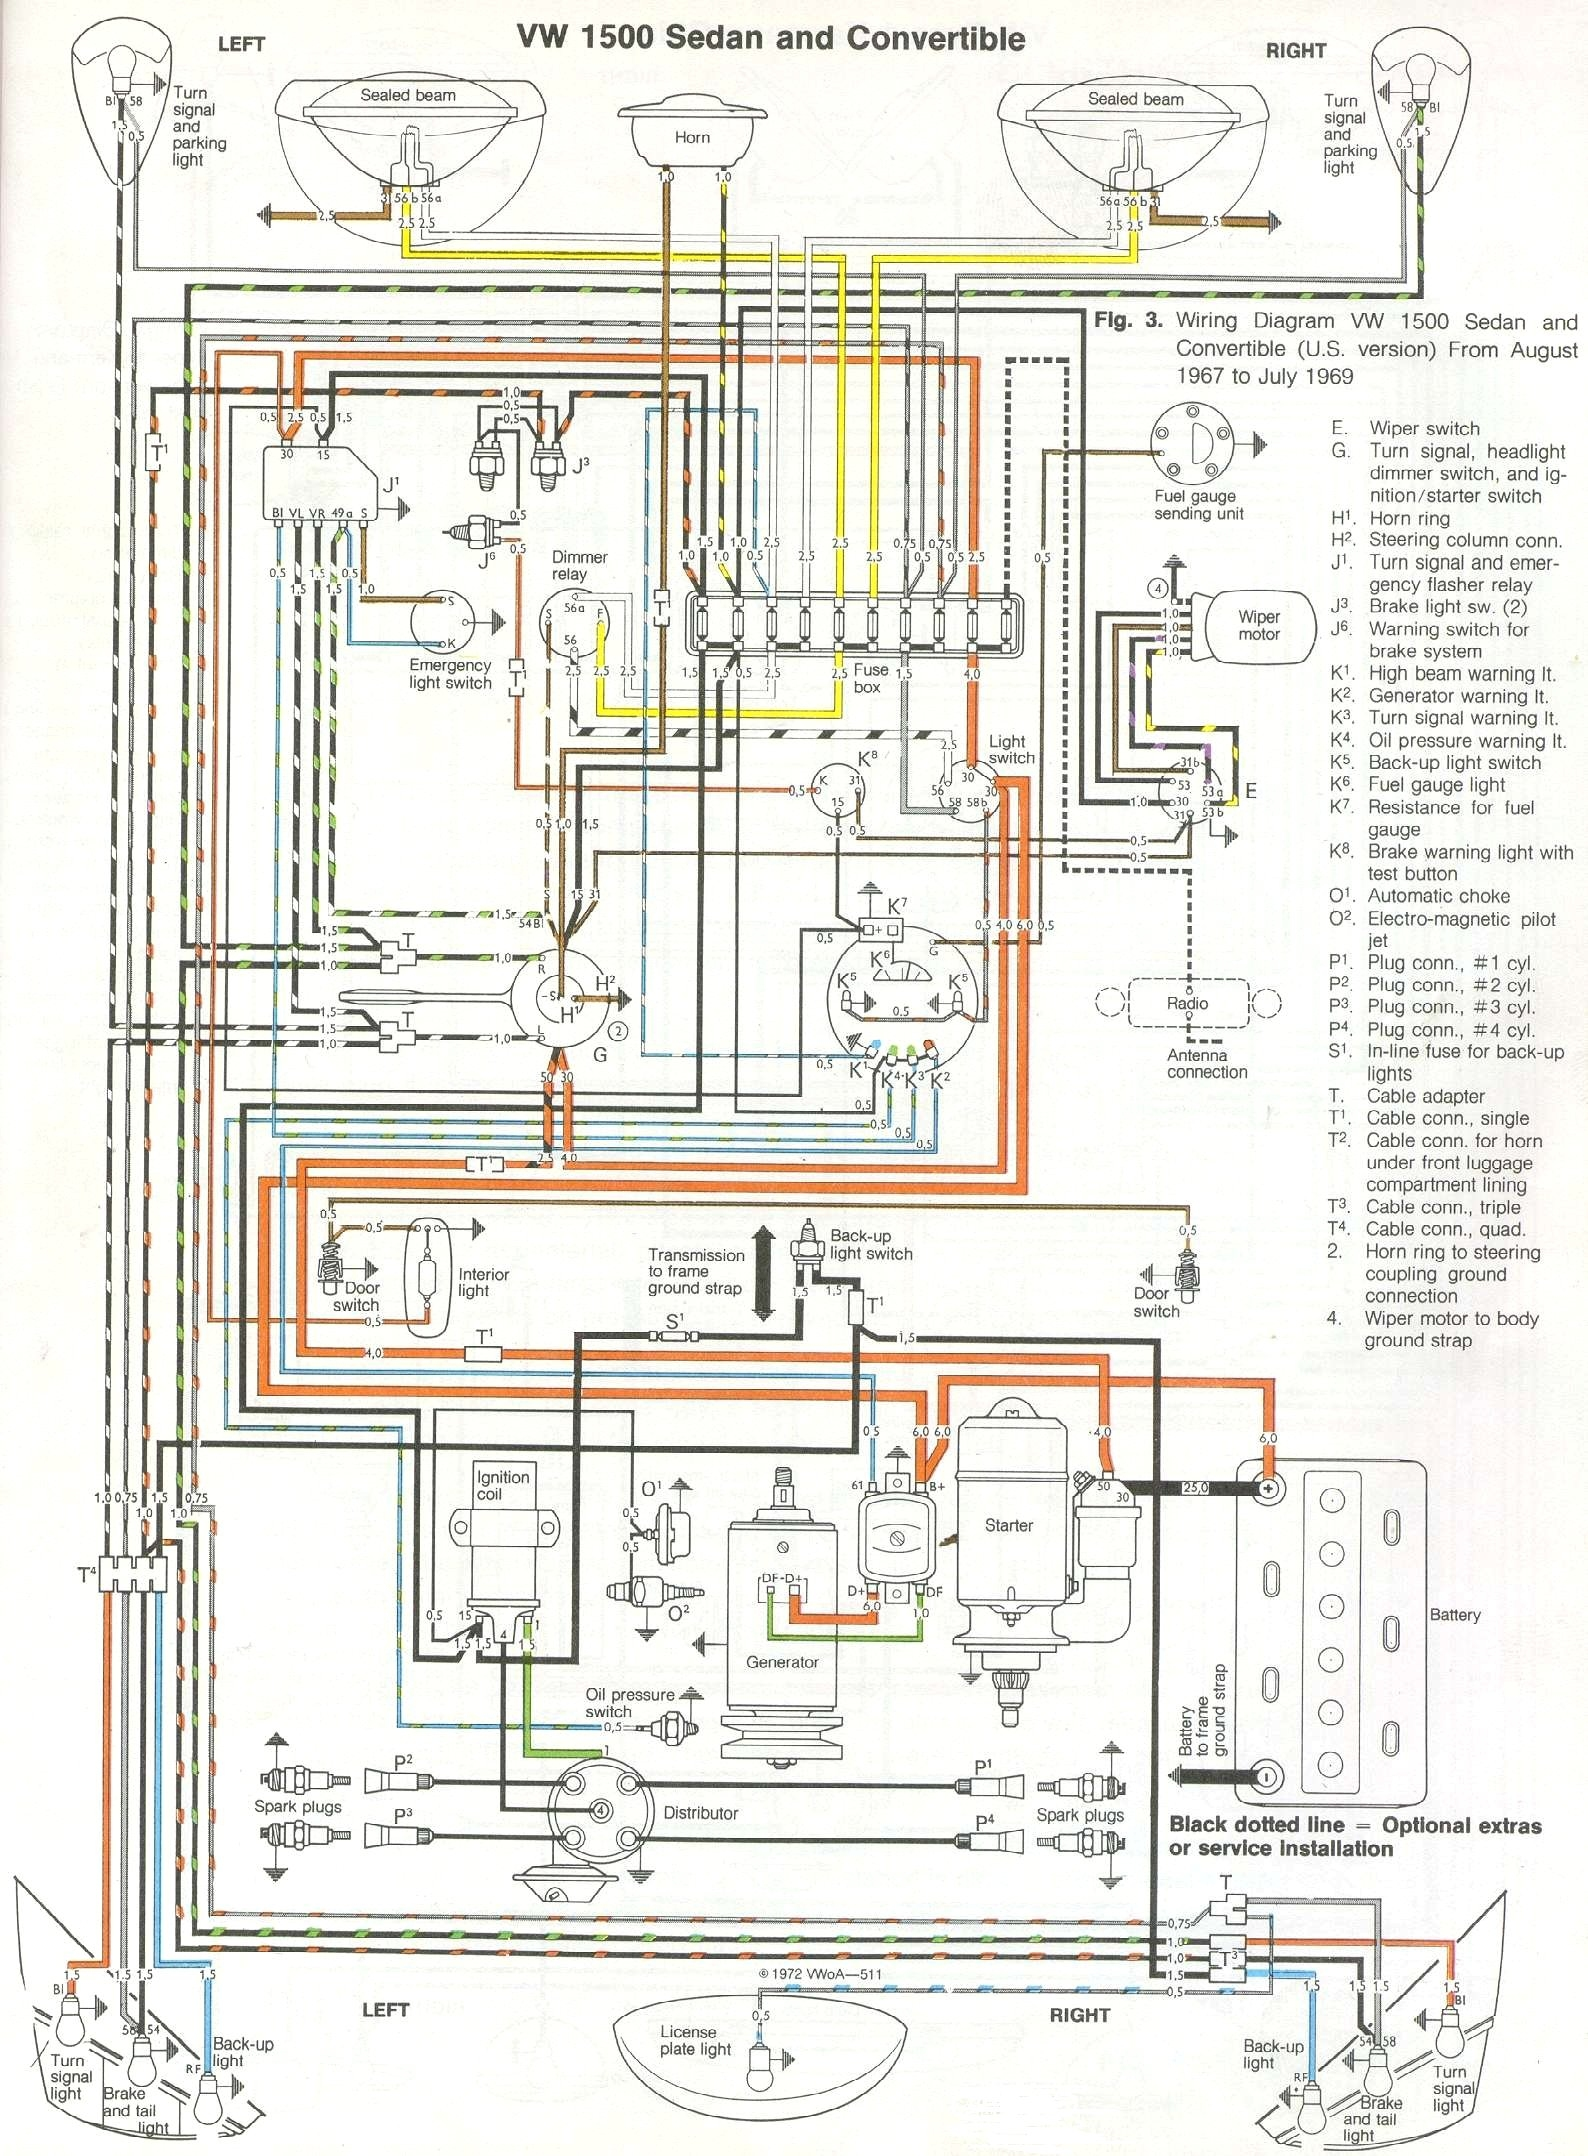 2015 Vw Jetta Fuse Box Diagram besides Backtech together with Wiring Diagram 69 Chevelle in addition Volkswagen Bug Engine Diagram also 2014 Xc60 r Design. on 1974 super beetle wiring diagram